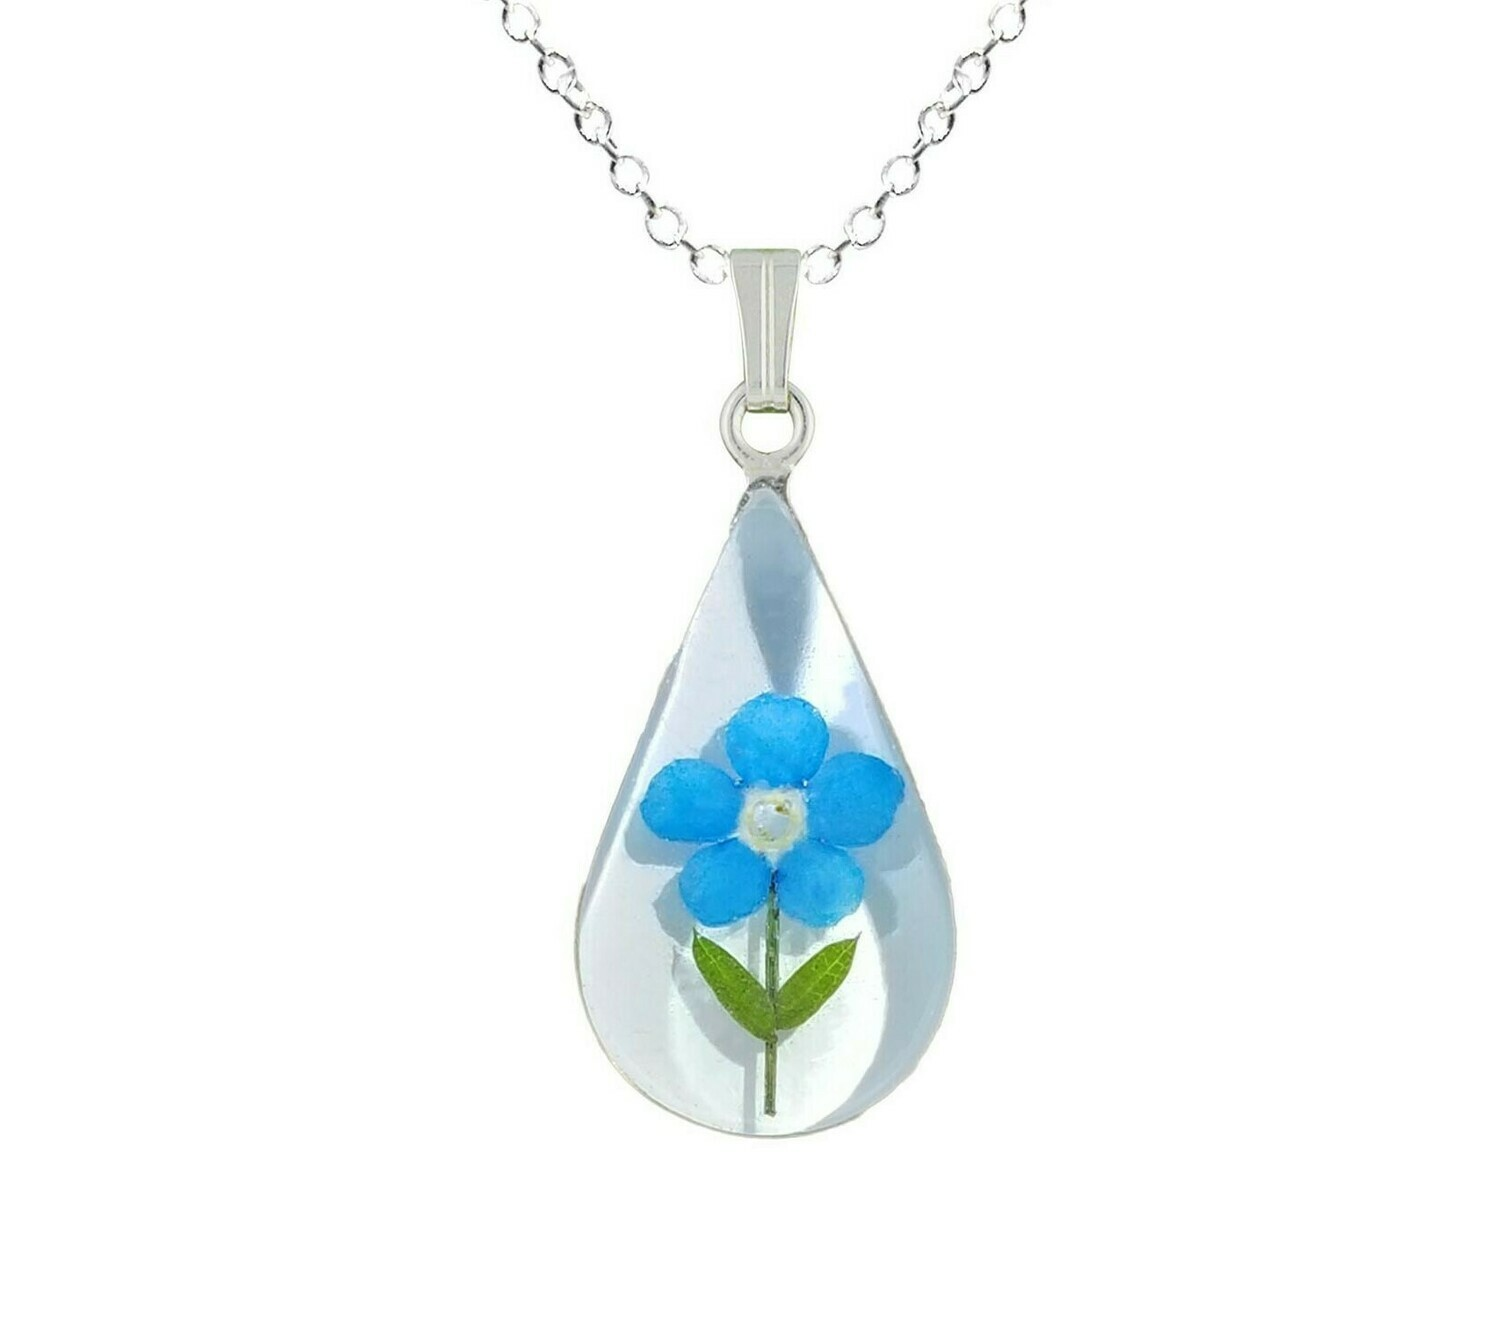 Forget-Me-Not Necklace, Medium Teardrop, White Background